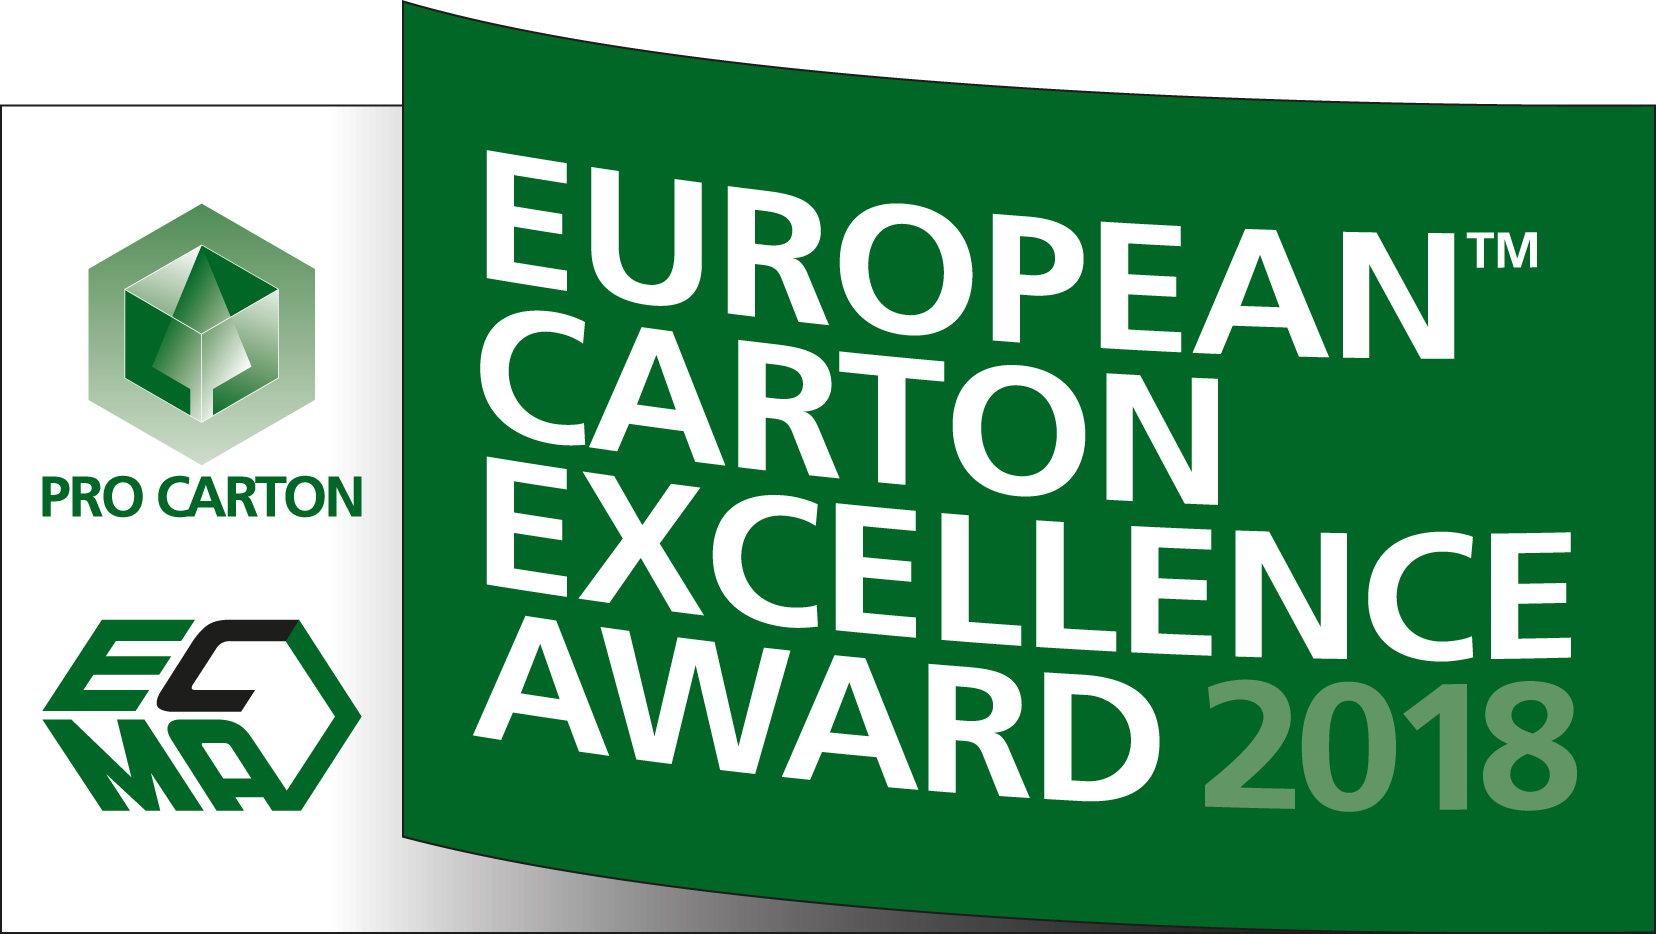 Be part of Europe's best - European Carton Excellence Award 2018